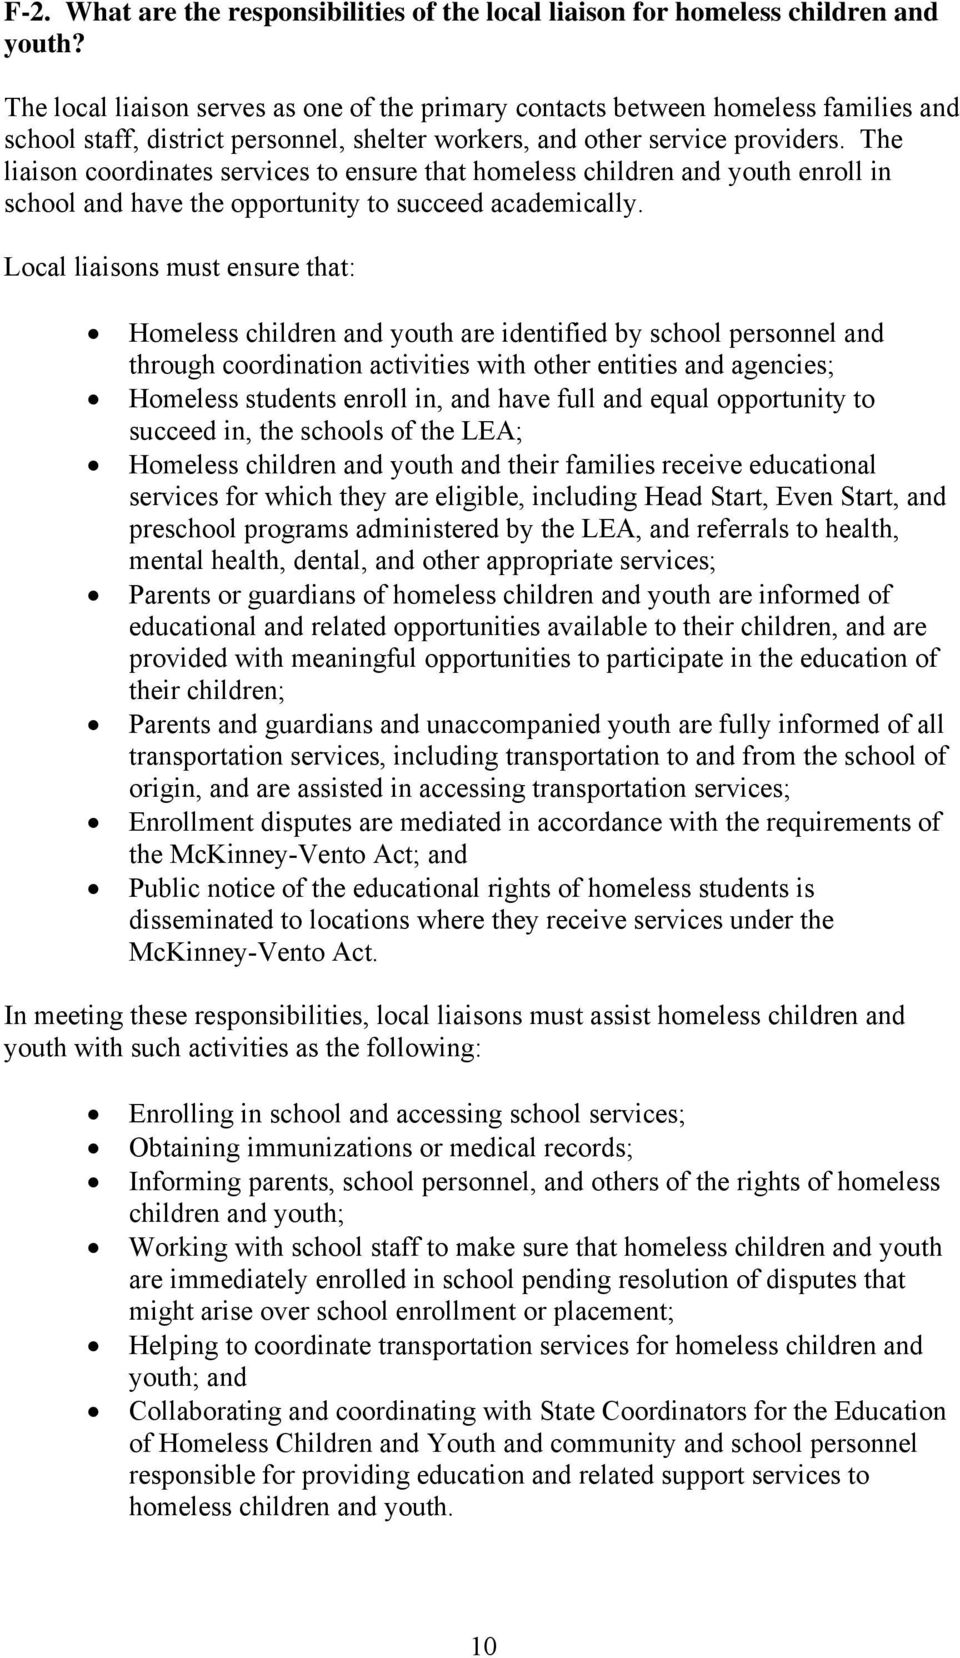 The liaison coordinates services to ensure that homeless children and youth enroll in school and have the opportunity to succeed academically.